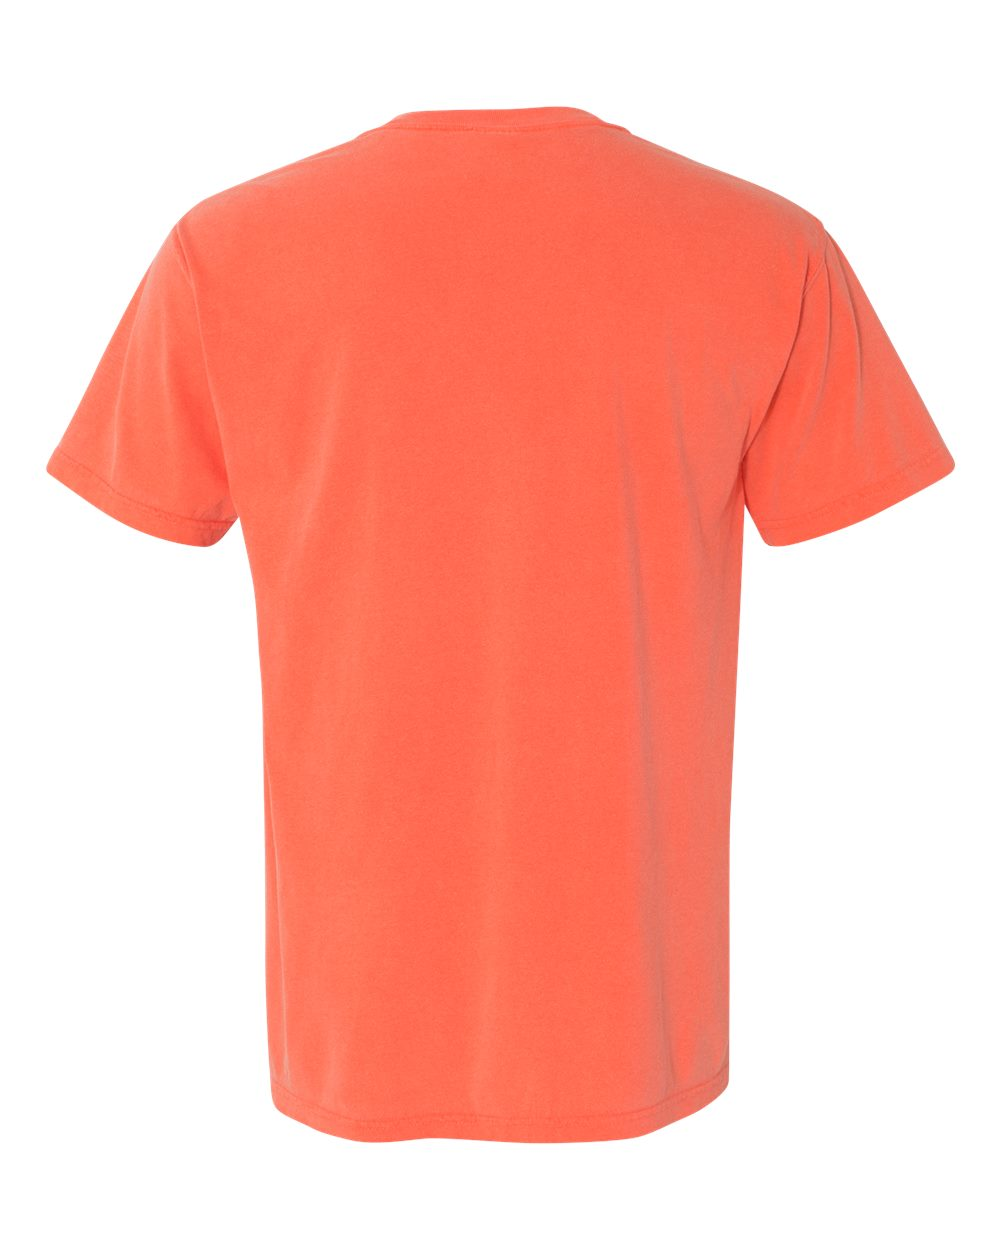 Comfort-Colors-Men-039-s-6-1-oz-Garment-Dyed-Pocket-T-Shirt-6030CC-S-3XL thumbnail 105